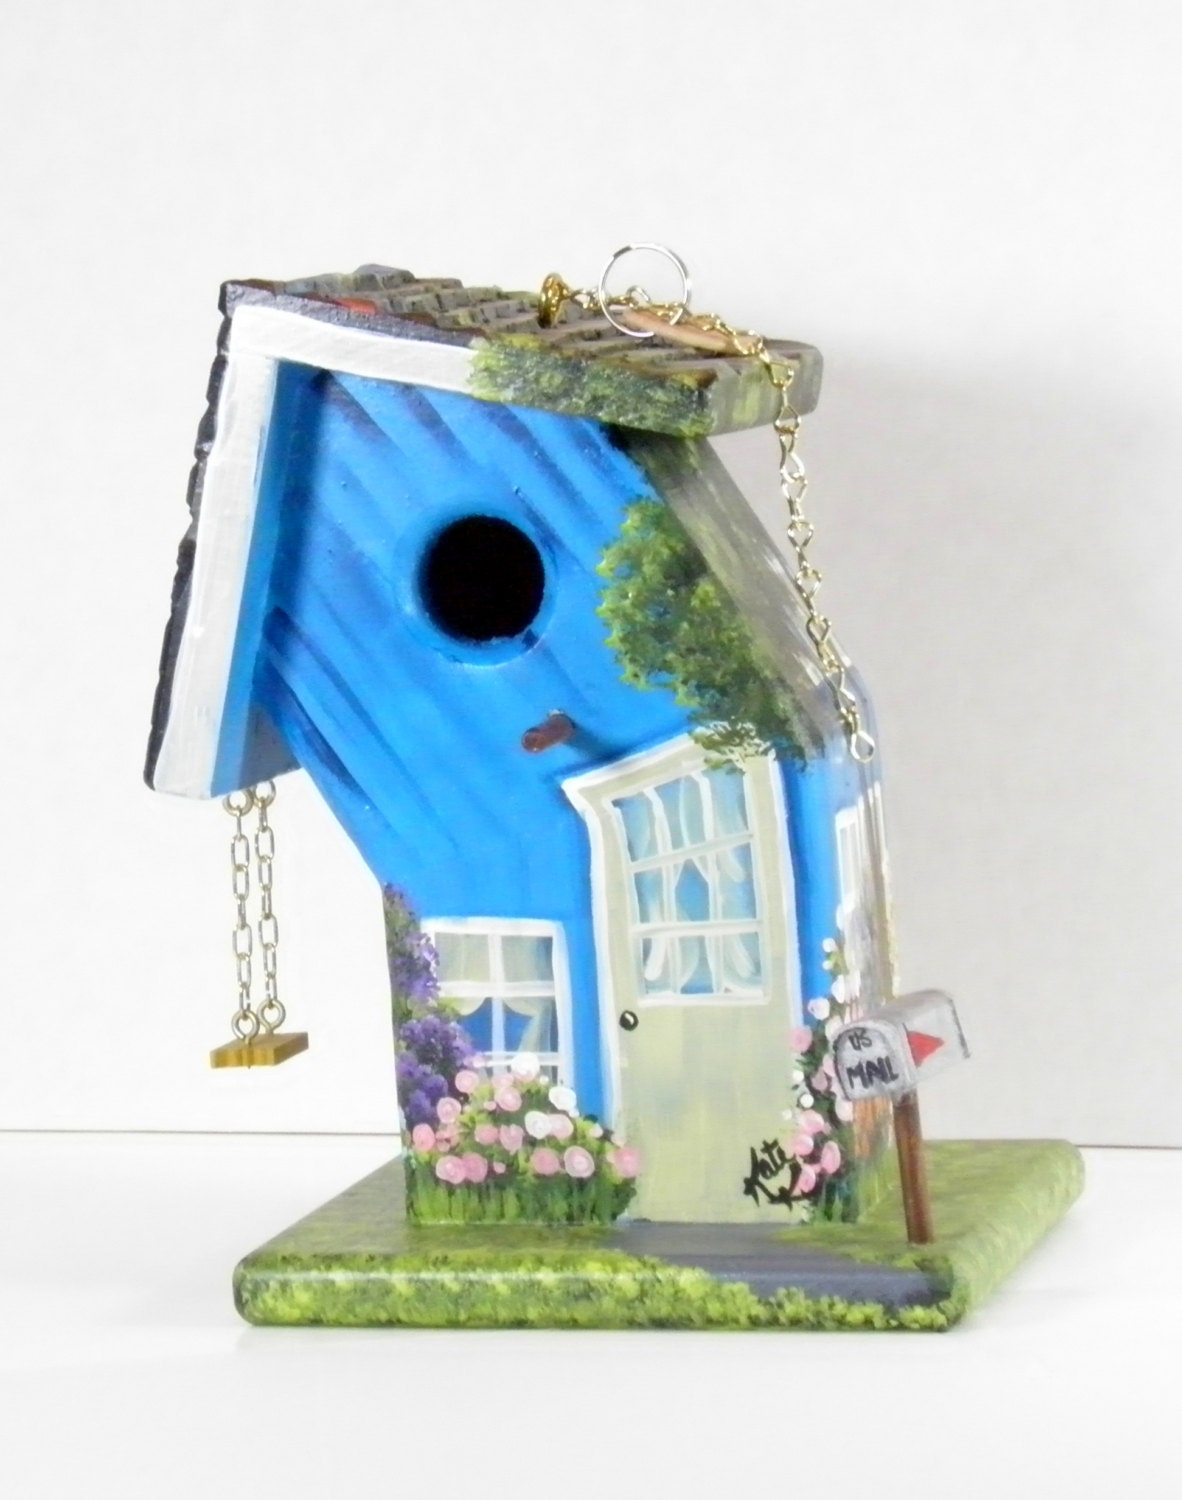 Whimsical Bent Blue Birdhouse Handmade Hand Painted with